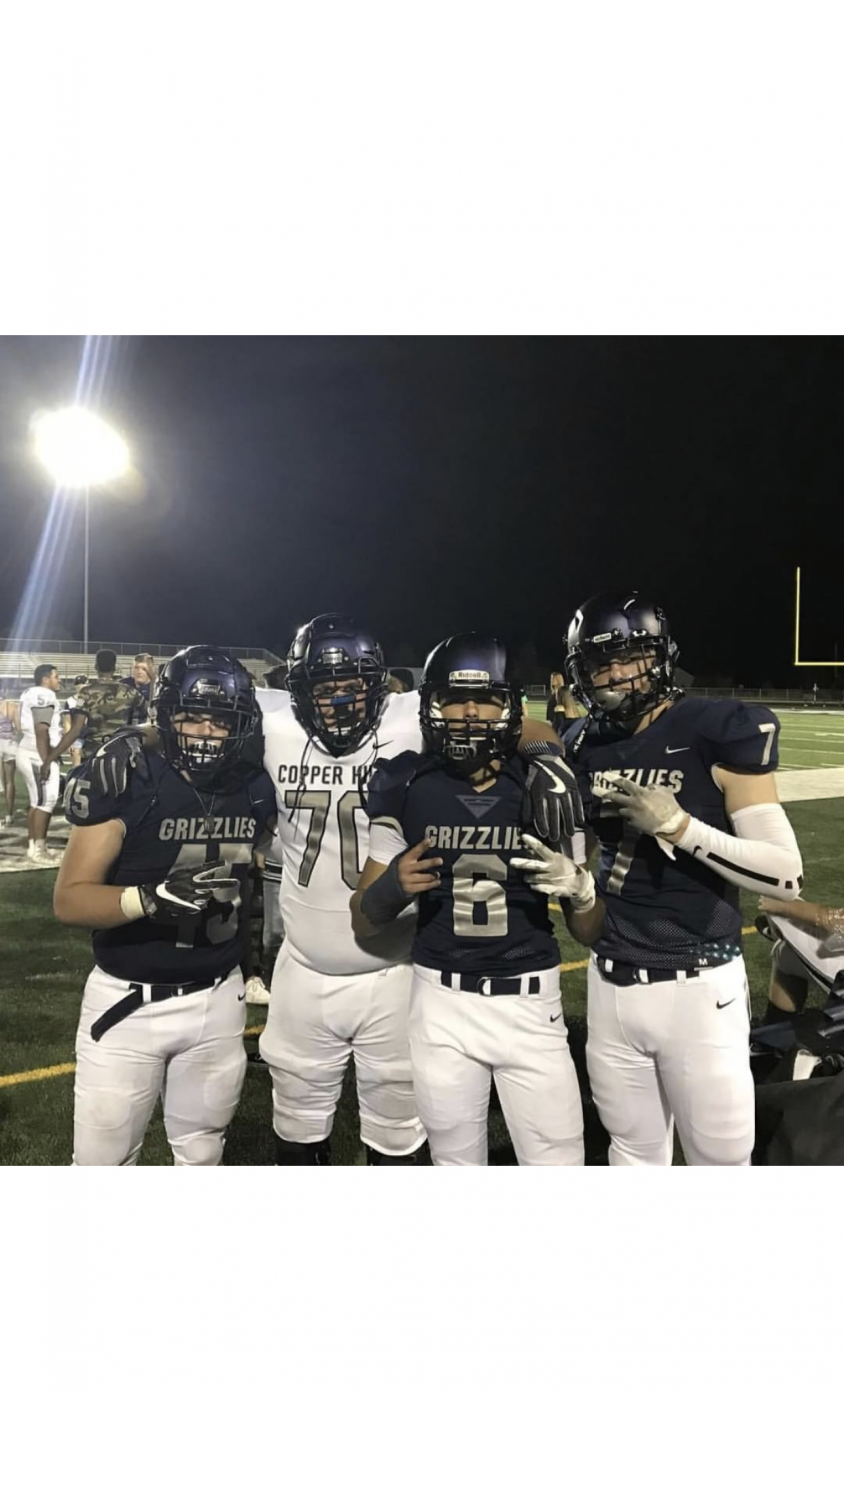 Copper Hills Football Players who will be Senior, Varsity plays this year (left to right)  Payton Durfey, DJ Jackson, Sratton Lockabay, and Tyson Hoggan.